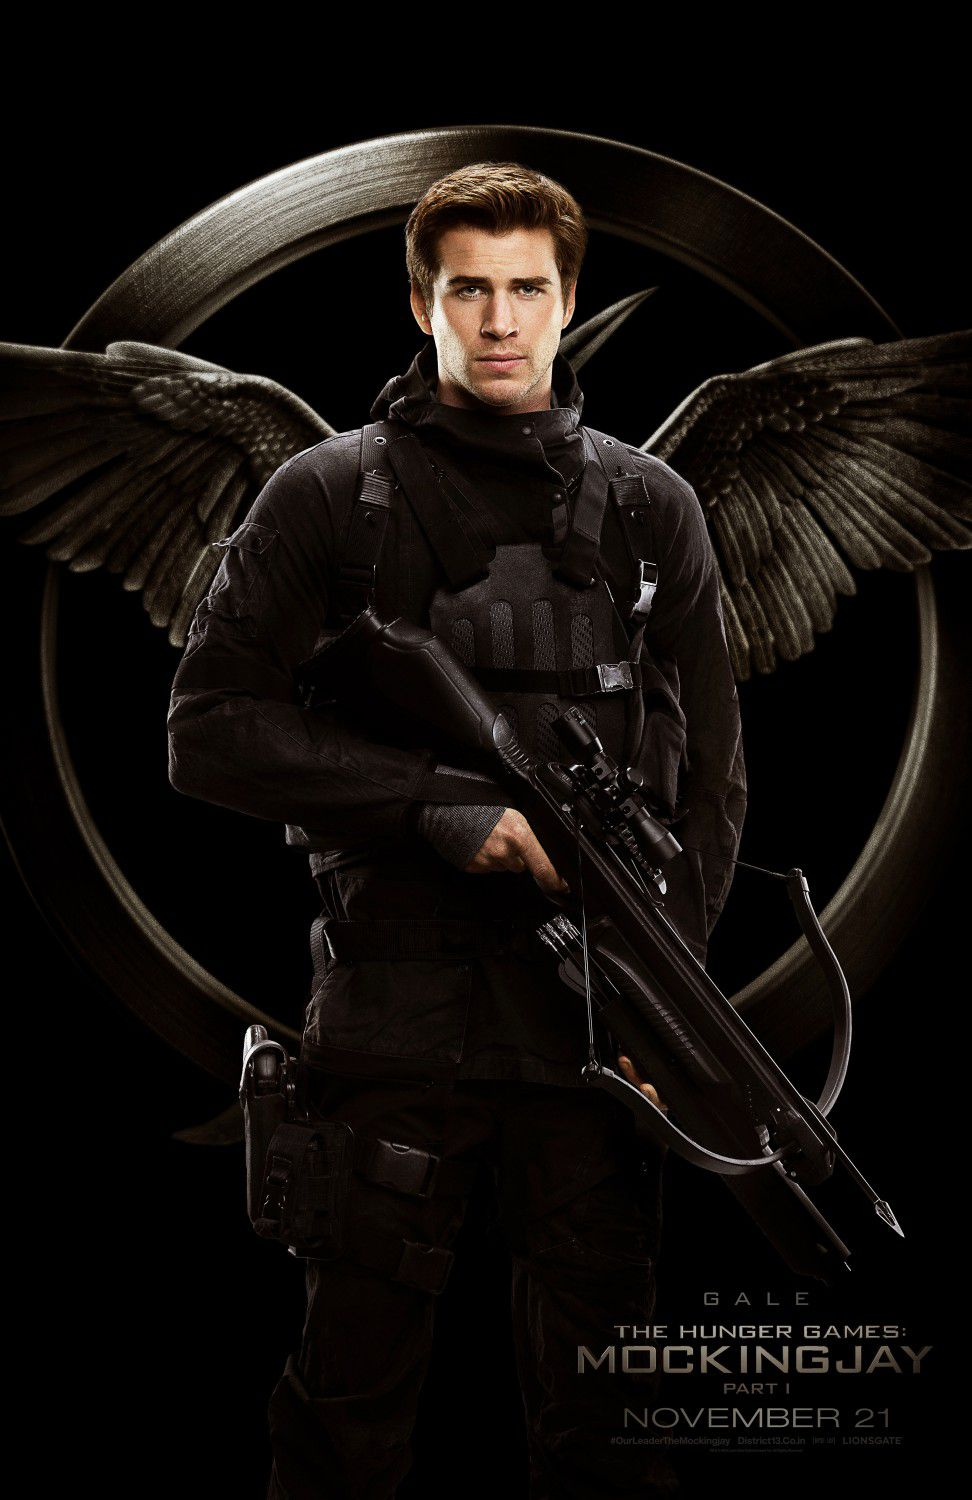 Liam Hemsworth: Gale Hawthorne